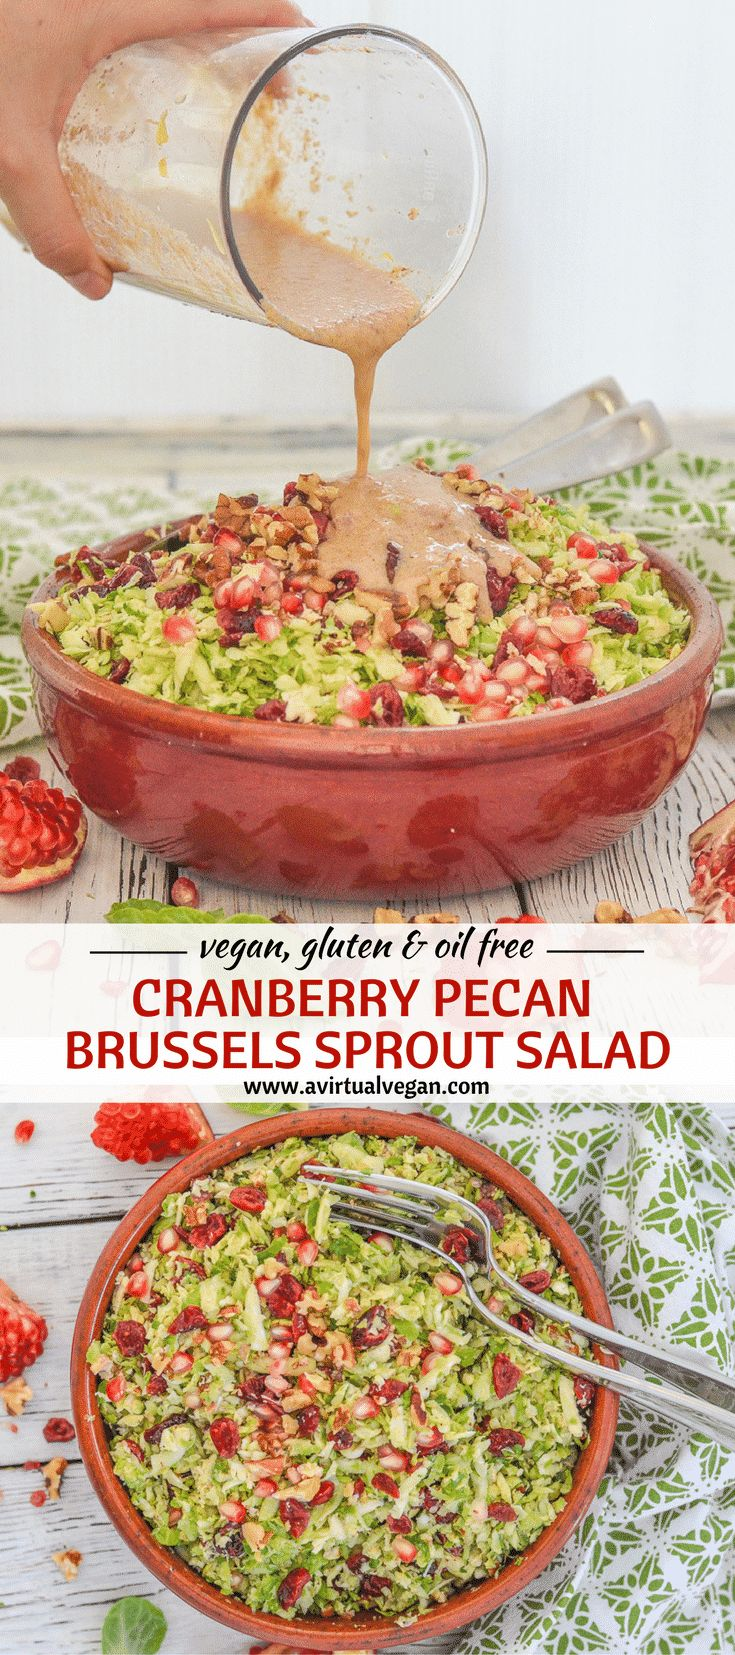 This citrus and cinnamon infused Cranberry Pecan Brussels Sprout Salad is fresh & absolutely packed with flavour &interesting textures. It's also hearty & warming thanks to the orange &cinnamon vinaigrette. Perfect for all of your fall & winter entertaining! The prep was made easy with the Braun MultiQuick 9.  via @avirtualvegan  #sponsored #ConquerTheUnexpected #MQ9